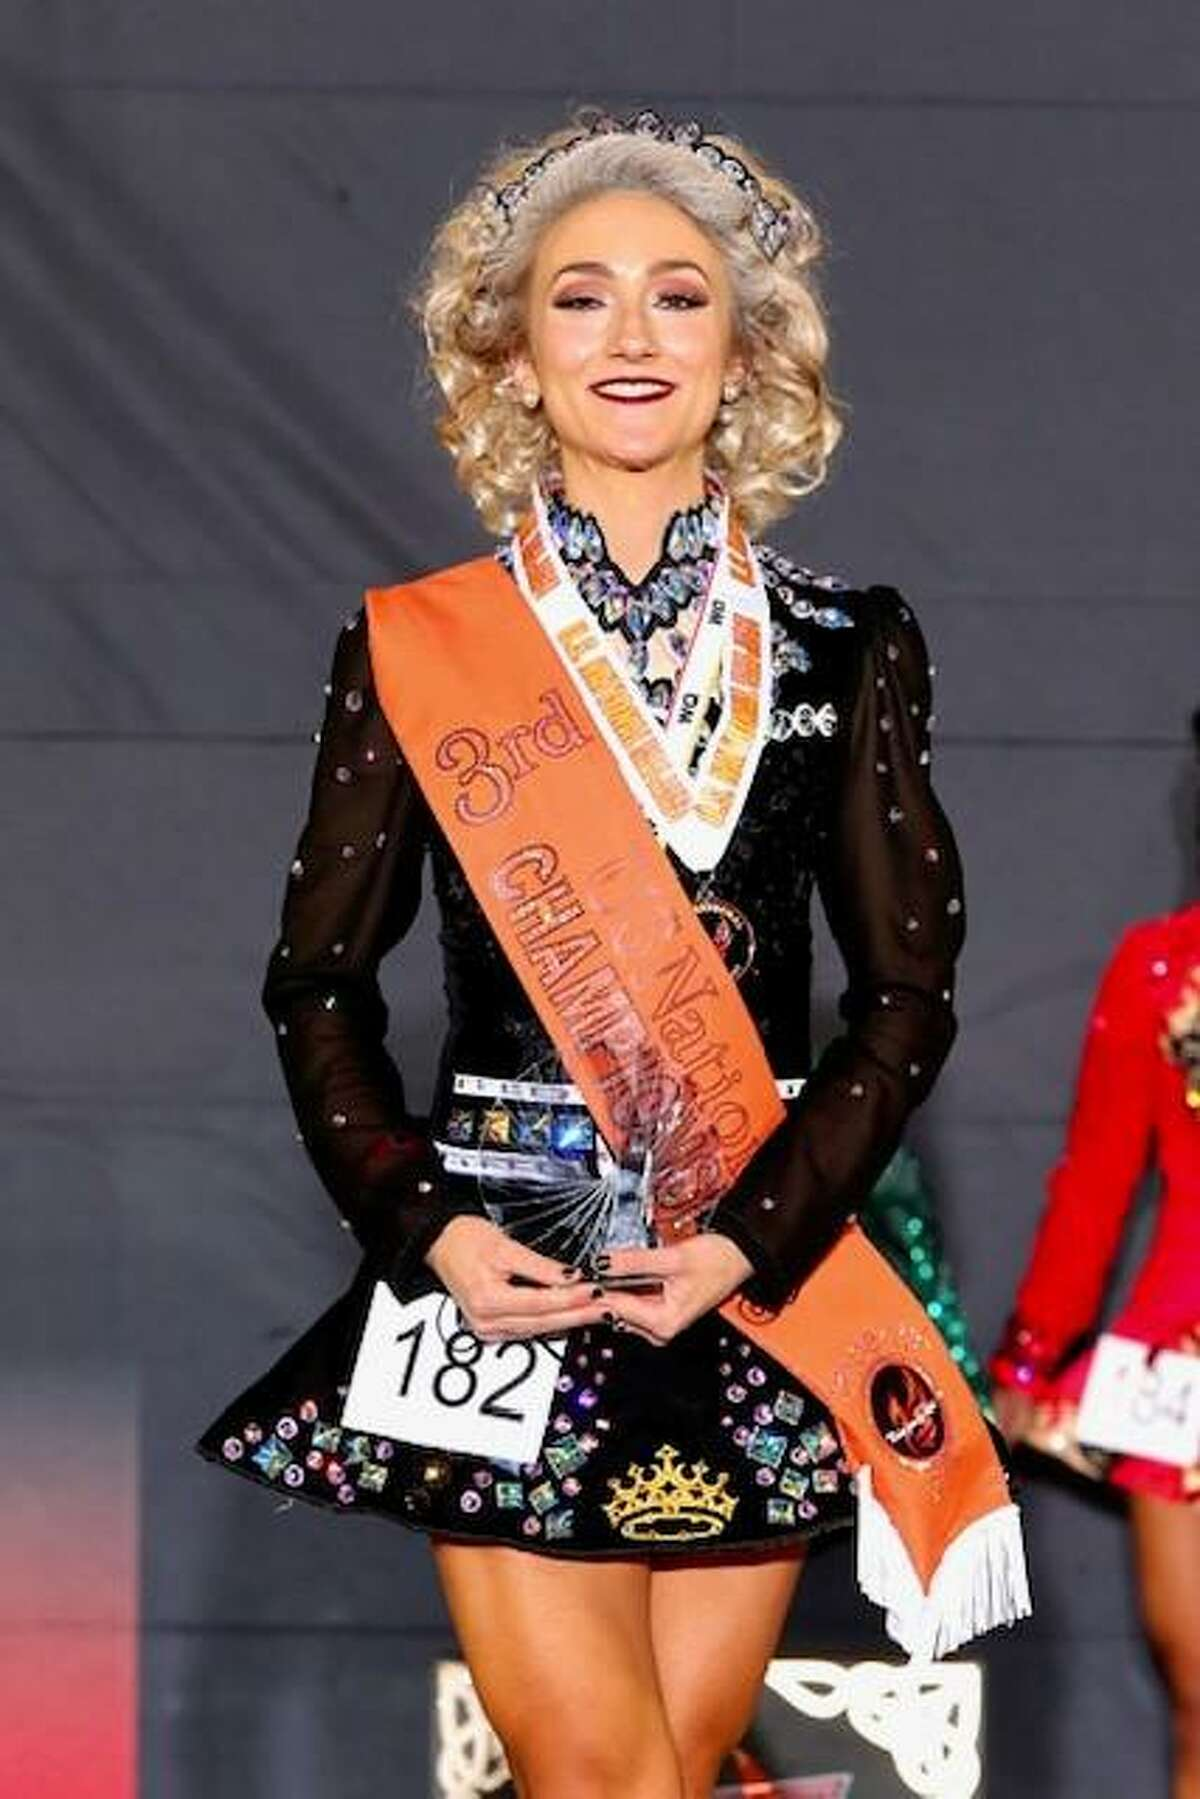 Stamford resident Lauren Beadle won third place in the ladies 22-and-over category at the National Irish Dance Championships in July.